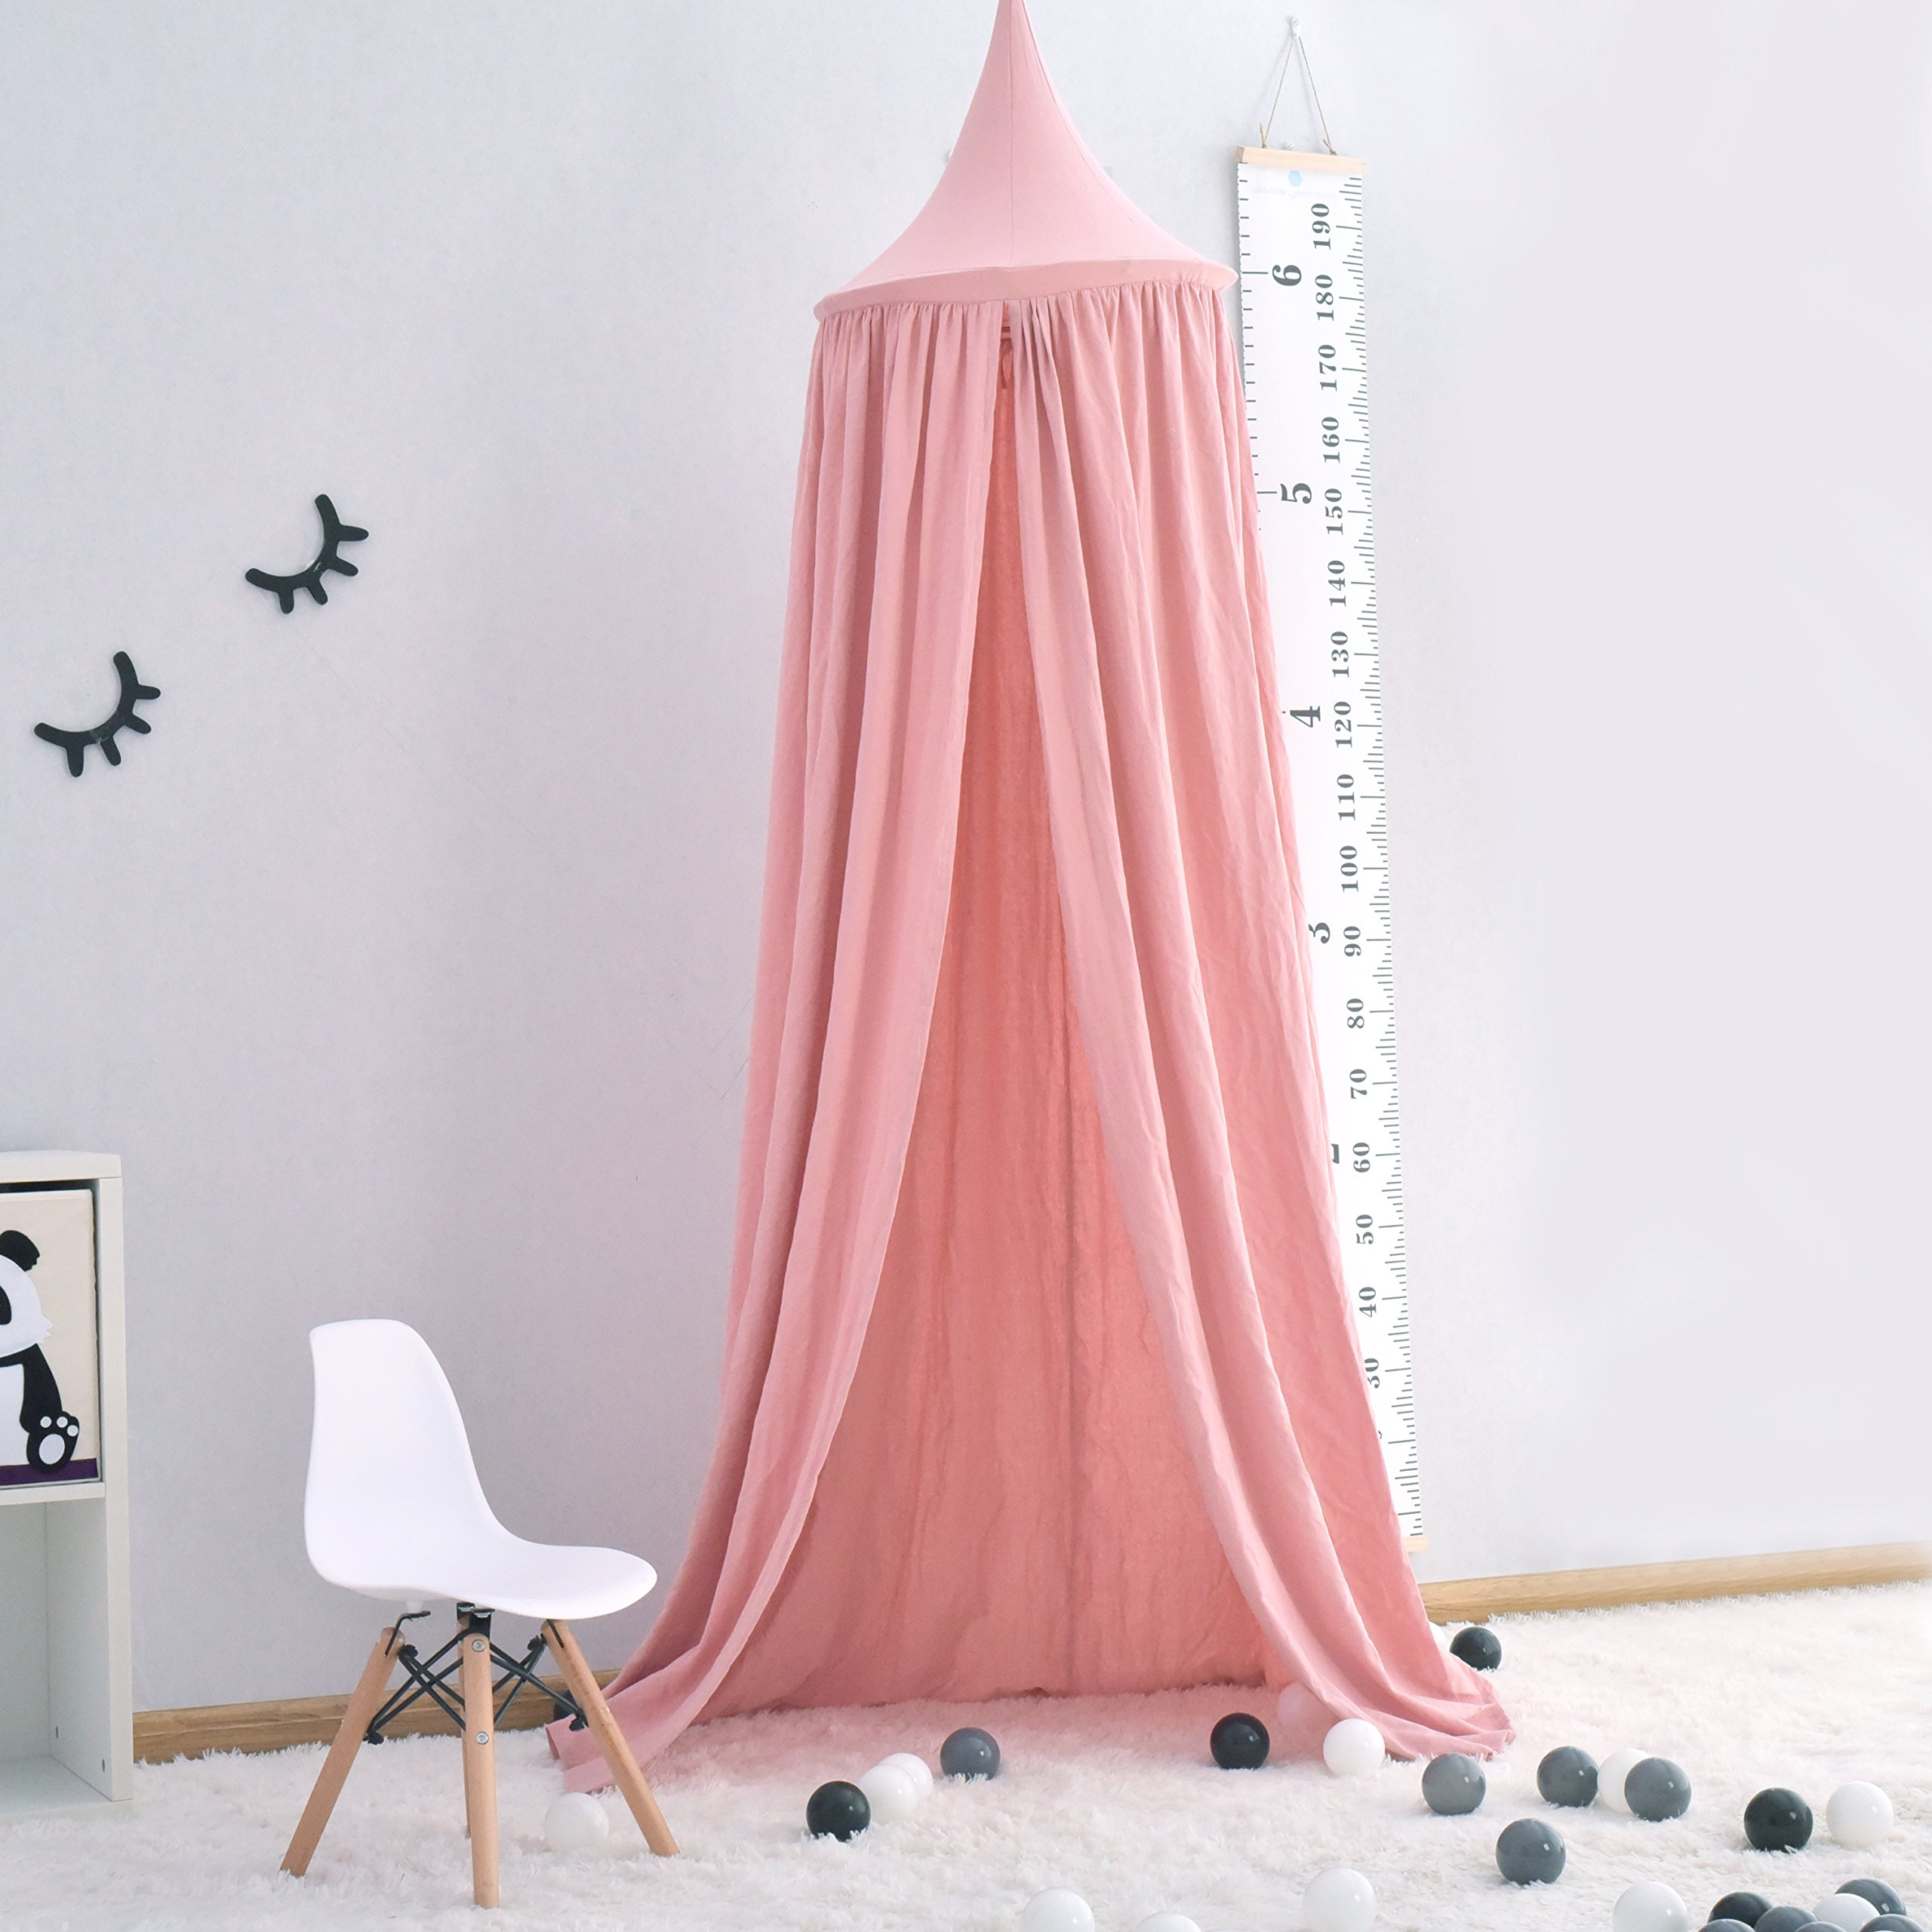 Generate Cotton Canvas Dome Bed Canopy Kids Play Tent Mosquito Net for Baby Kids Indoor Outdoor Playing Reading Height 230cm/90.55 in Pink